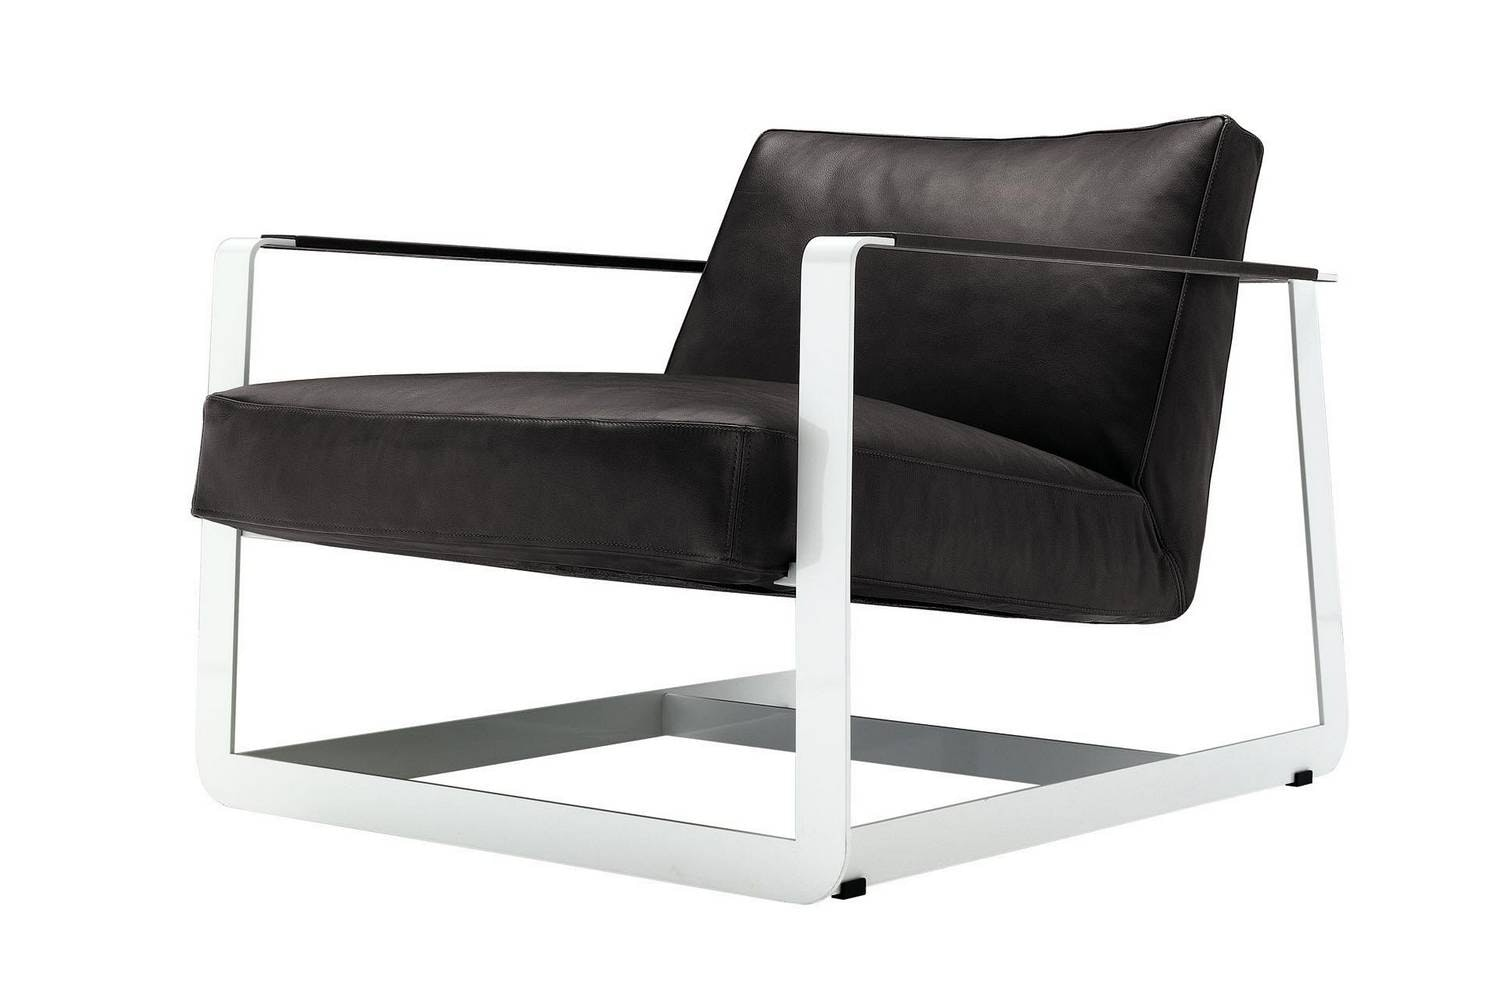 Gaston Armchair by Vincent Van Duysen for Poliform